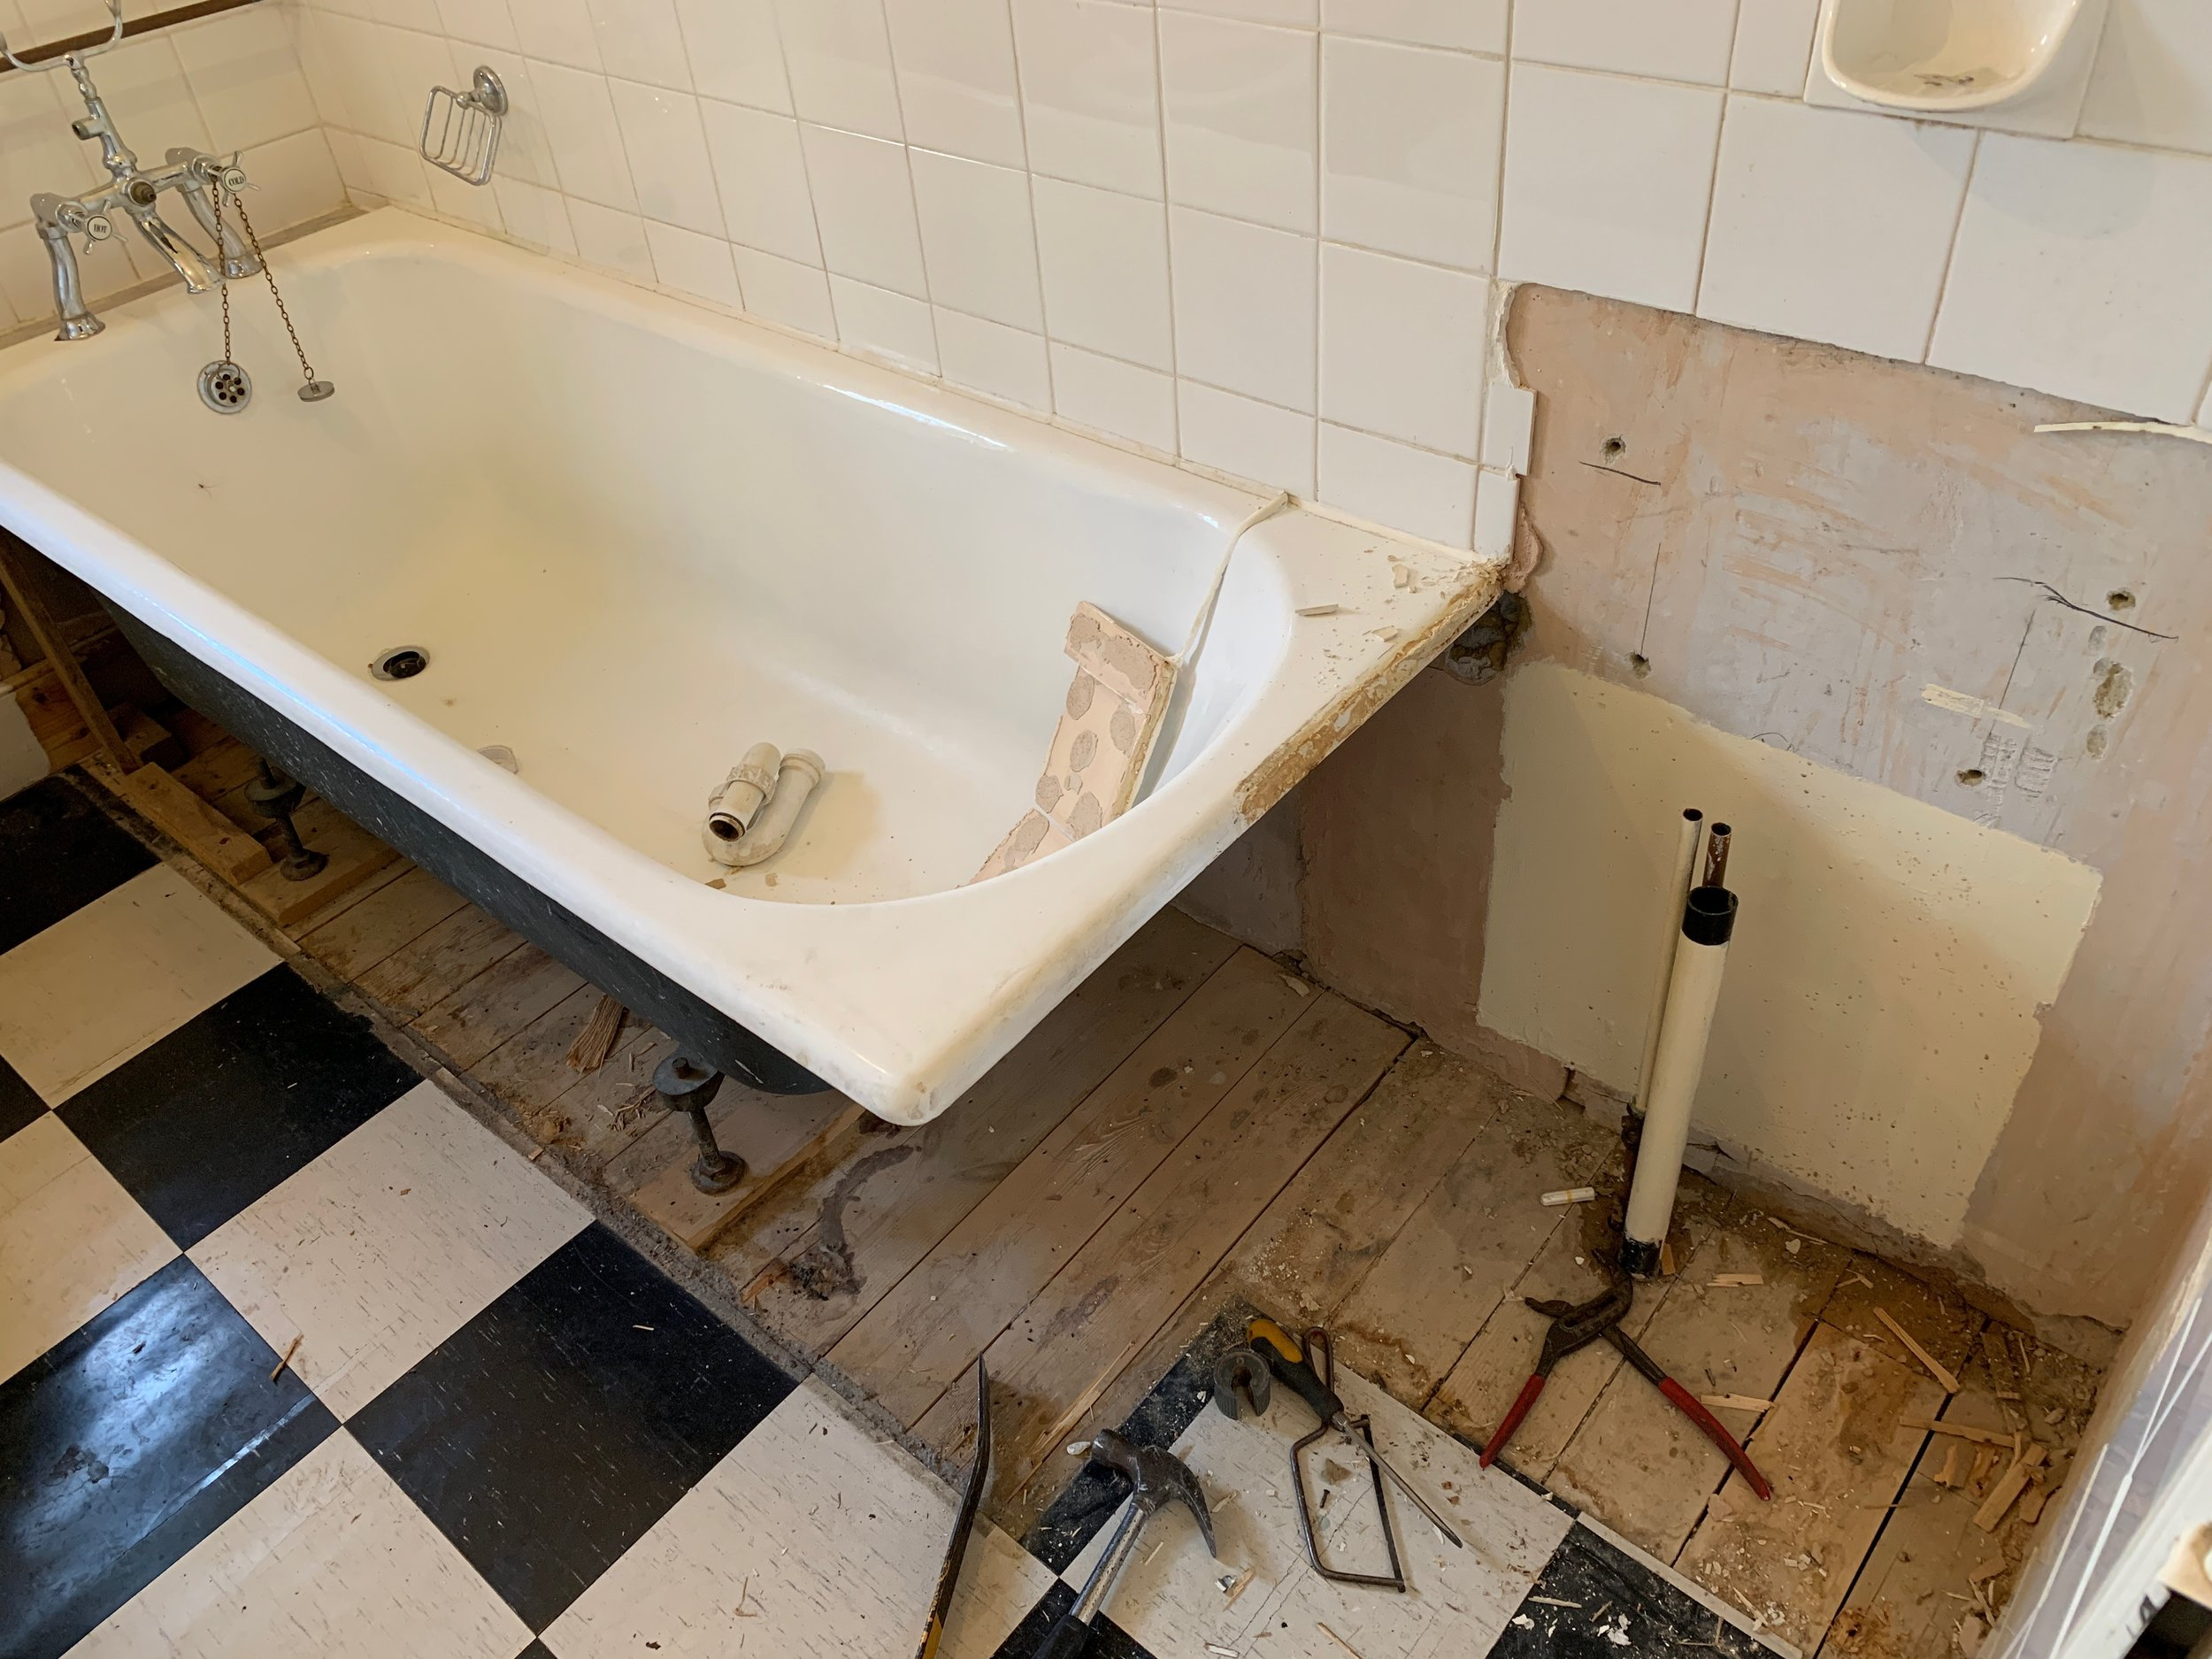 The sink and vanity unit have just been removed, next-up for removal is the bath…